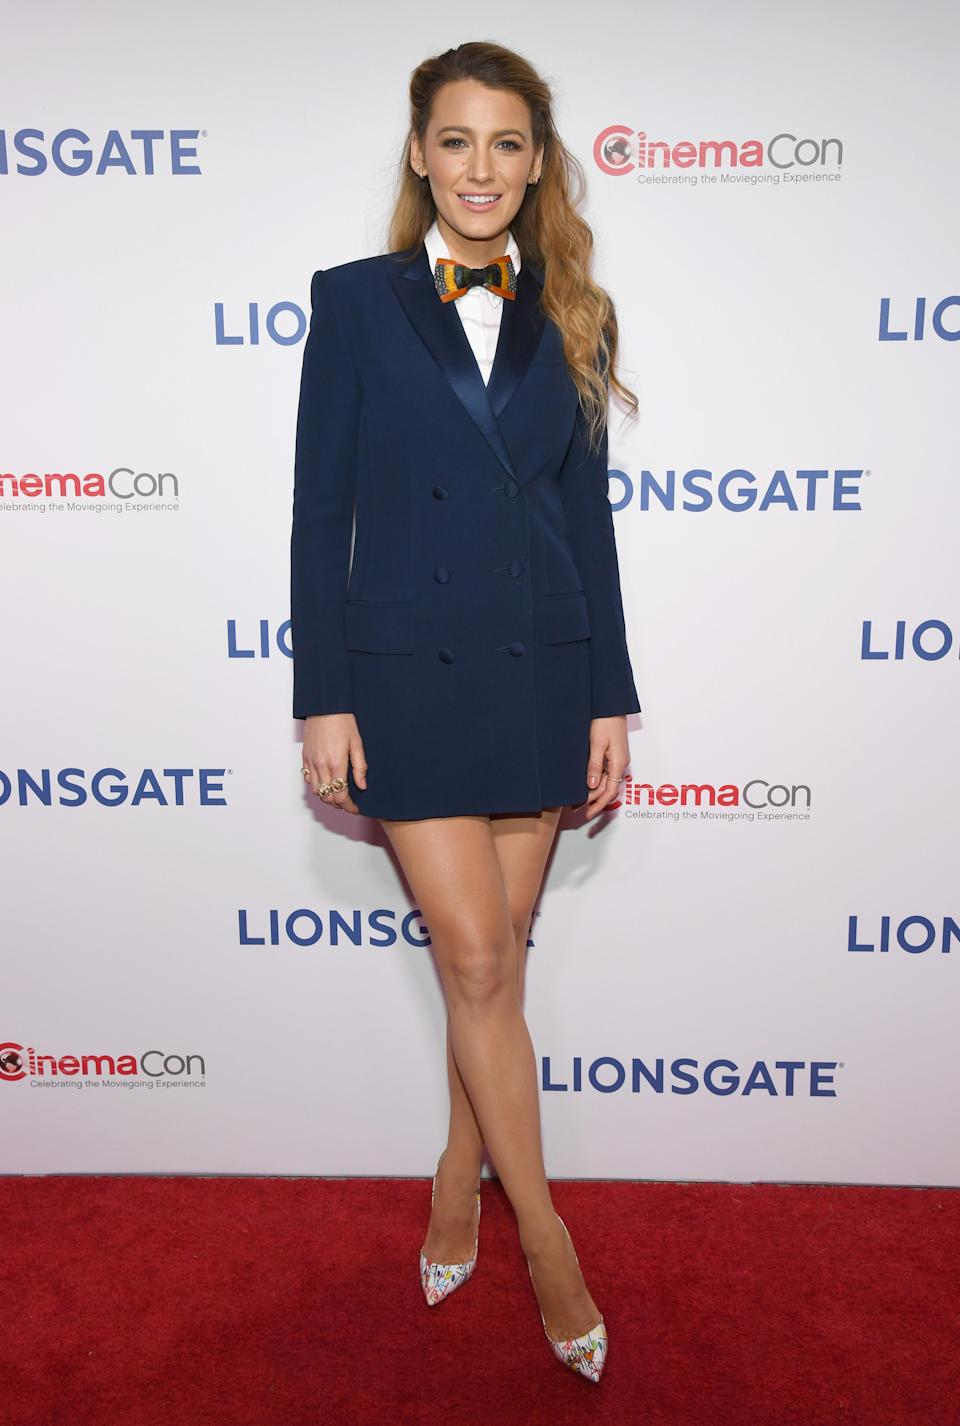 Blake Lively at CinemaCon 2018 (Photo: Getty)